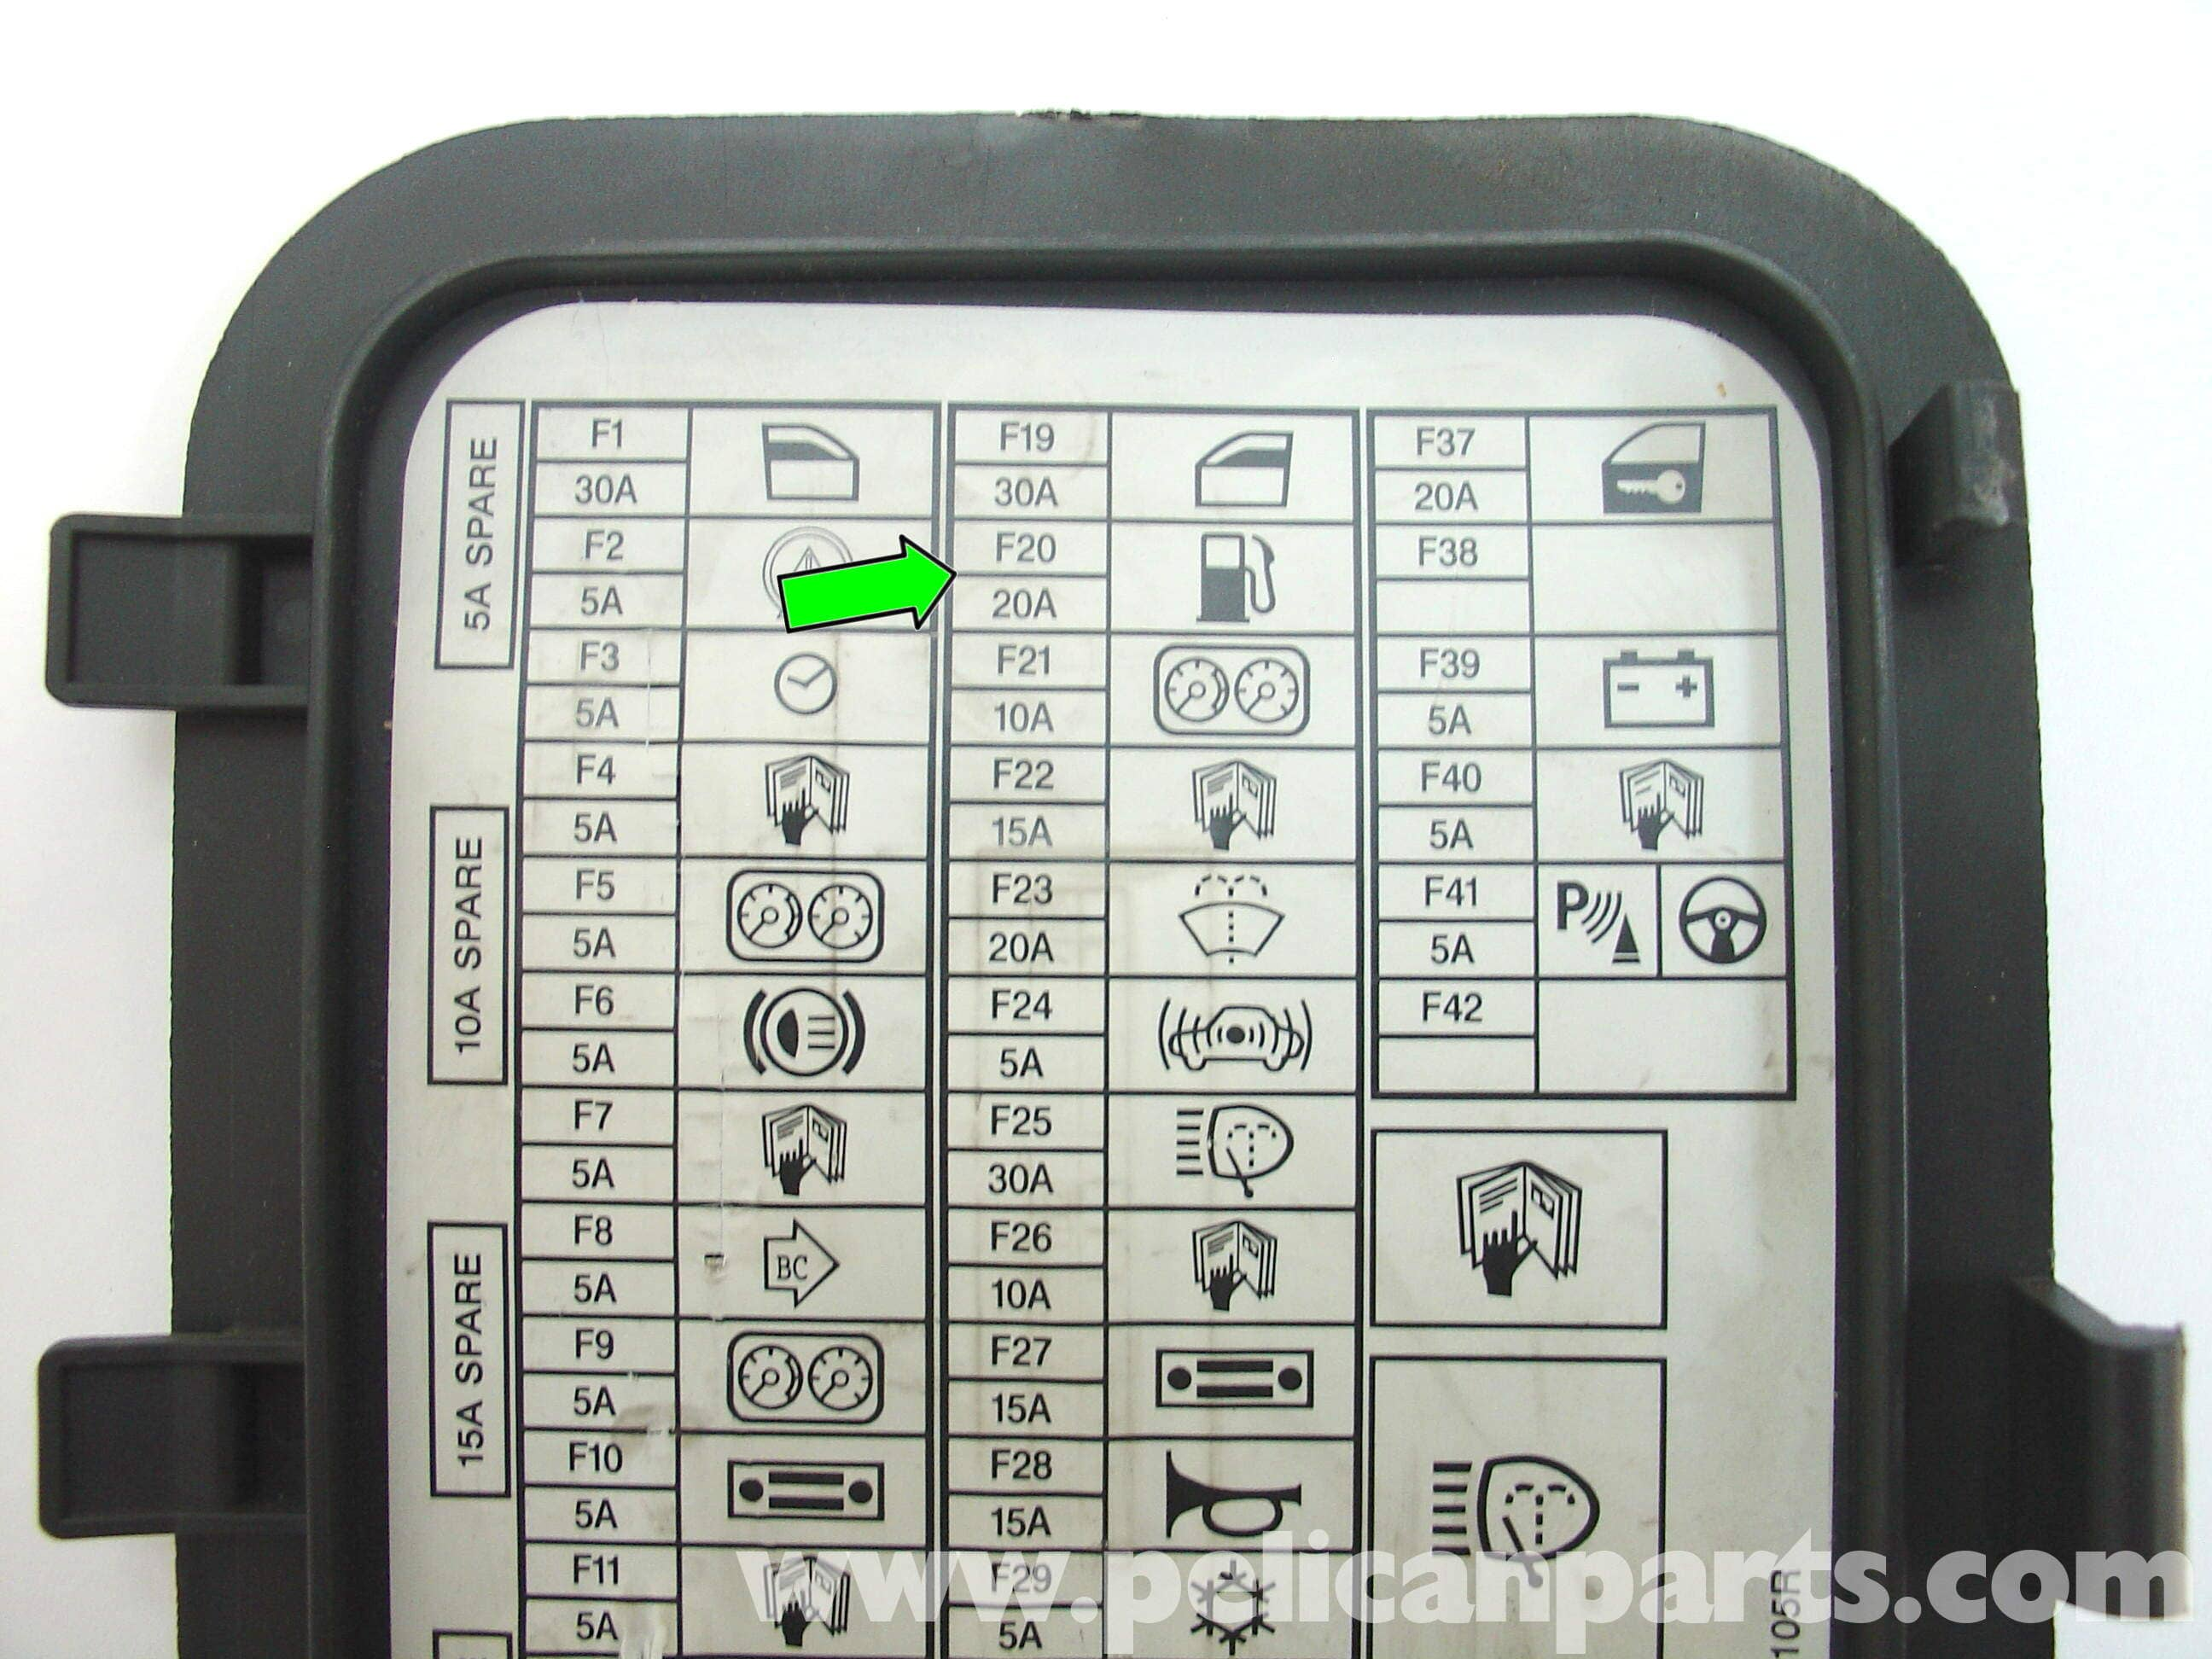 2002 Mini Cooper S Fuse Box Diagram Wiring Library. R50 Fuse Box Auto Electrical Wiring Diagram Mini Cooper 03. Mini Cooper. Mini Cooper Fuse Diagram 2007 Interpreter At Scoala.co